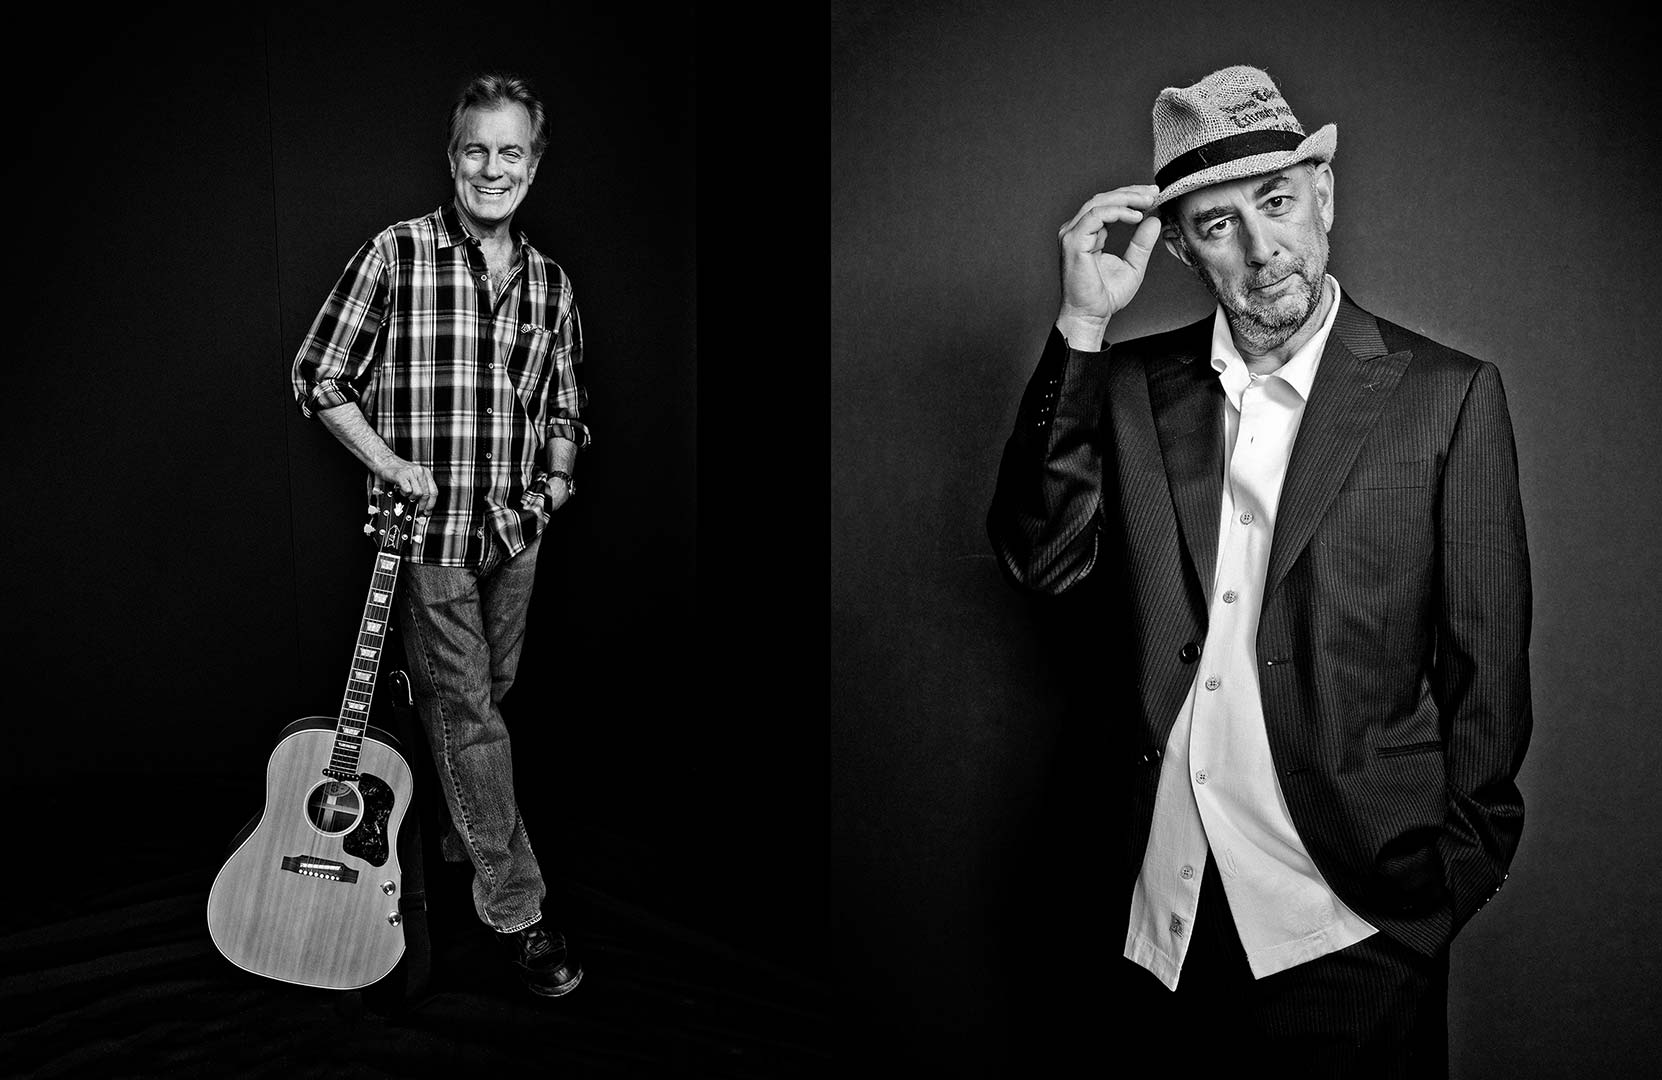 black & white portraits of actors Stephen Collins and Richard Schiff